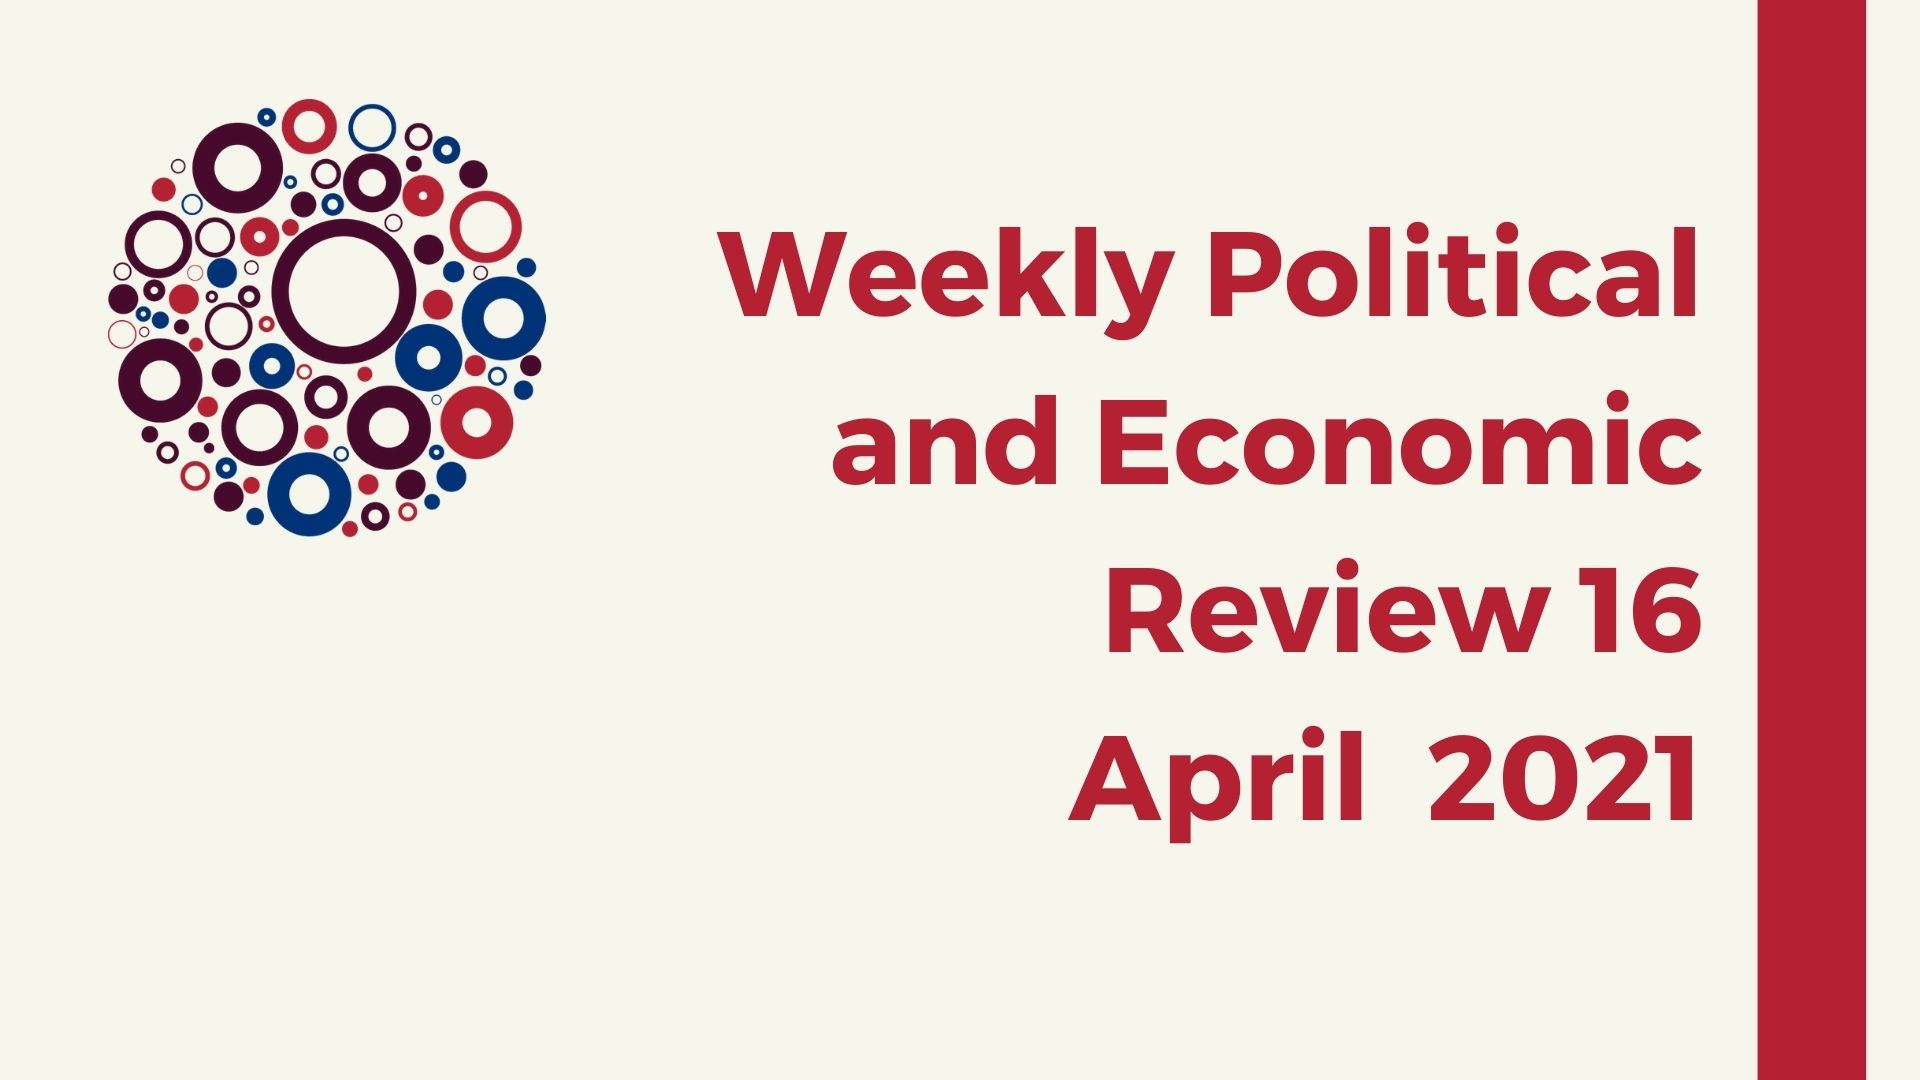 Weekly Political and Economic Review 16 April 2021